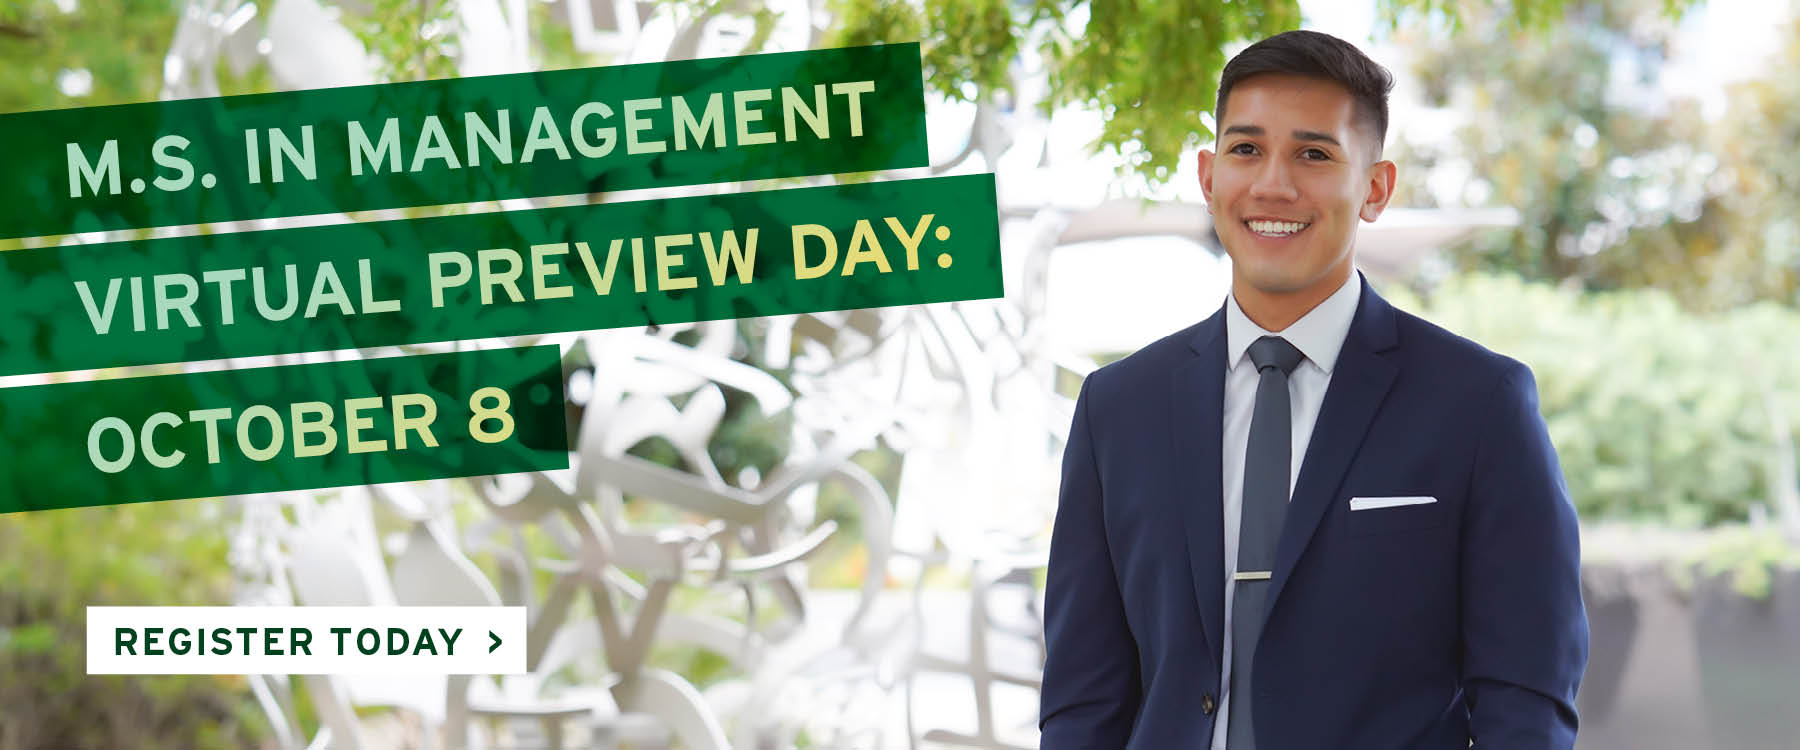 M.S. in Management Virtual Preview Day